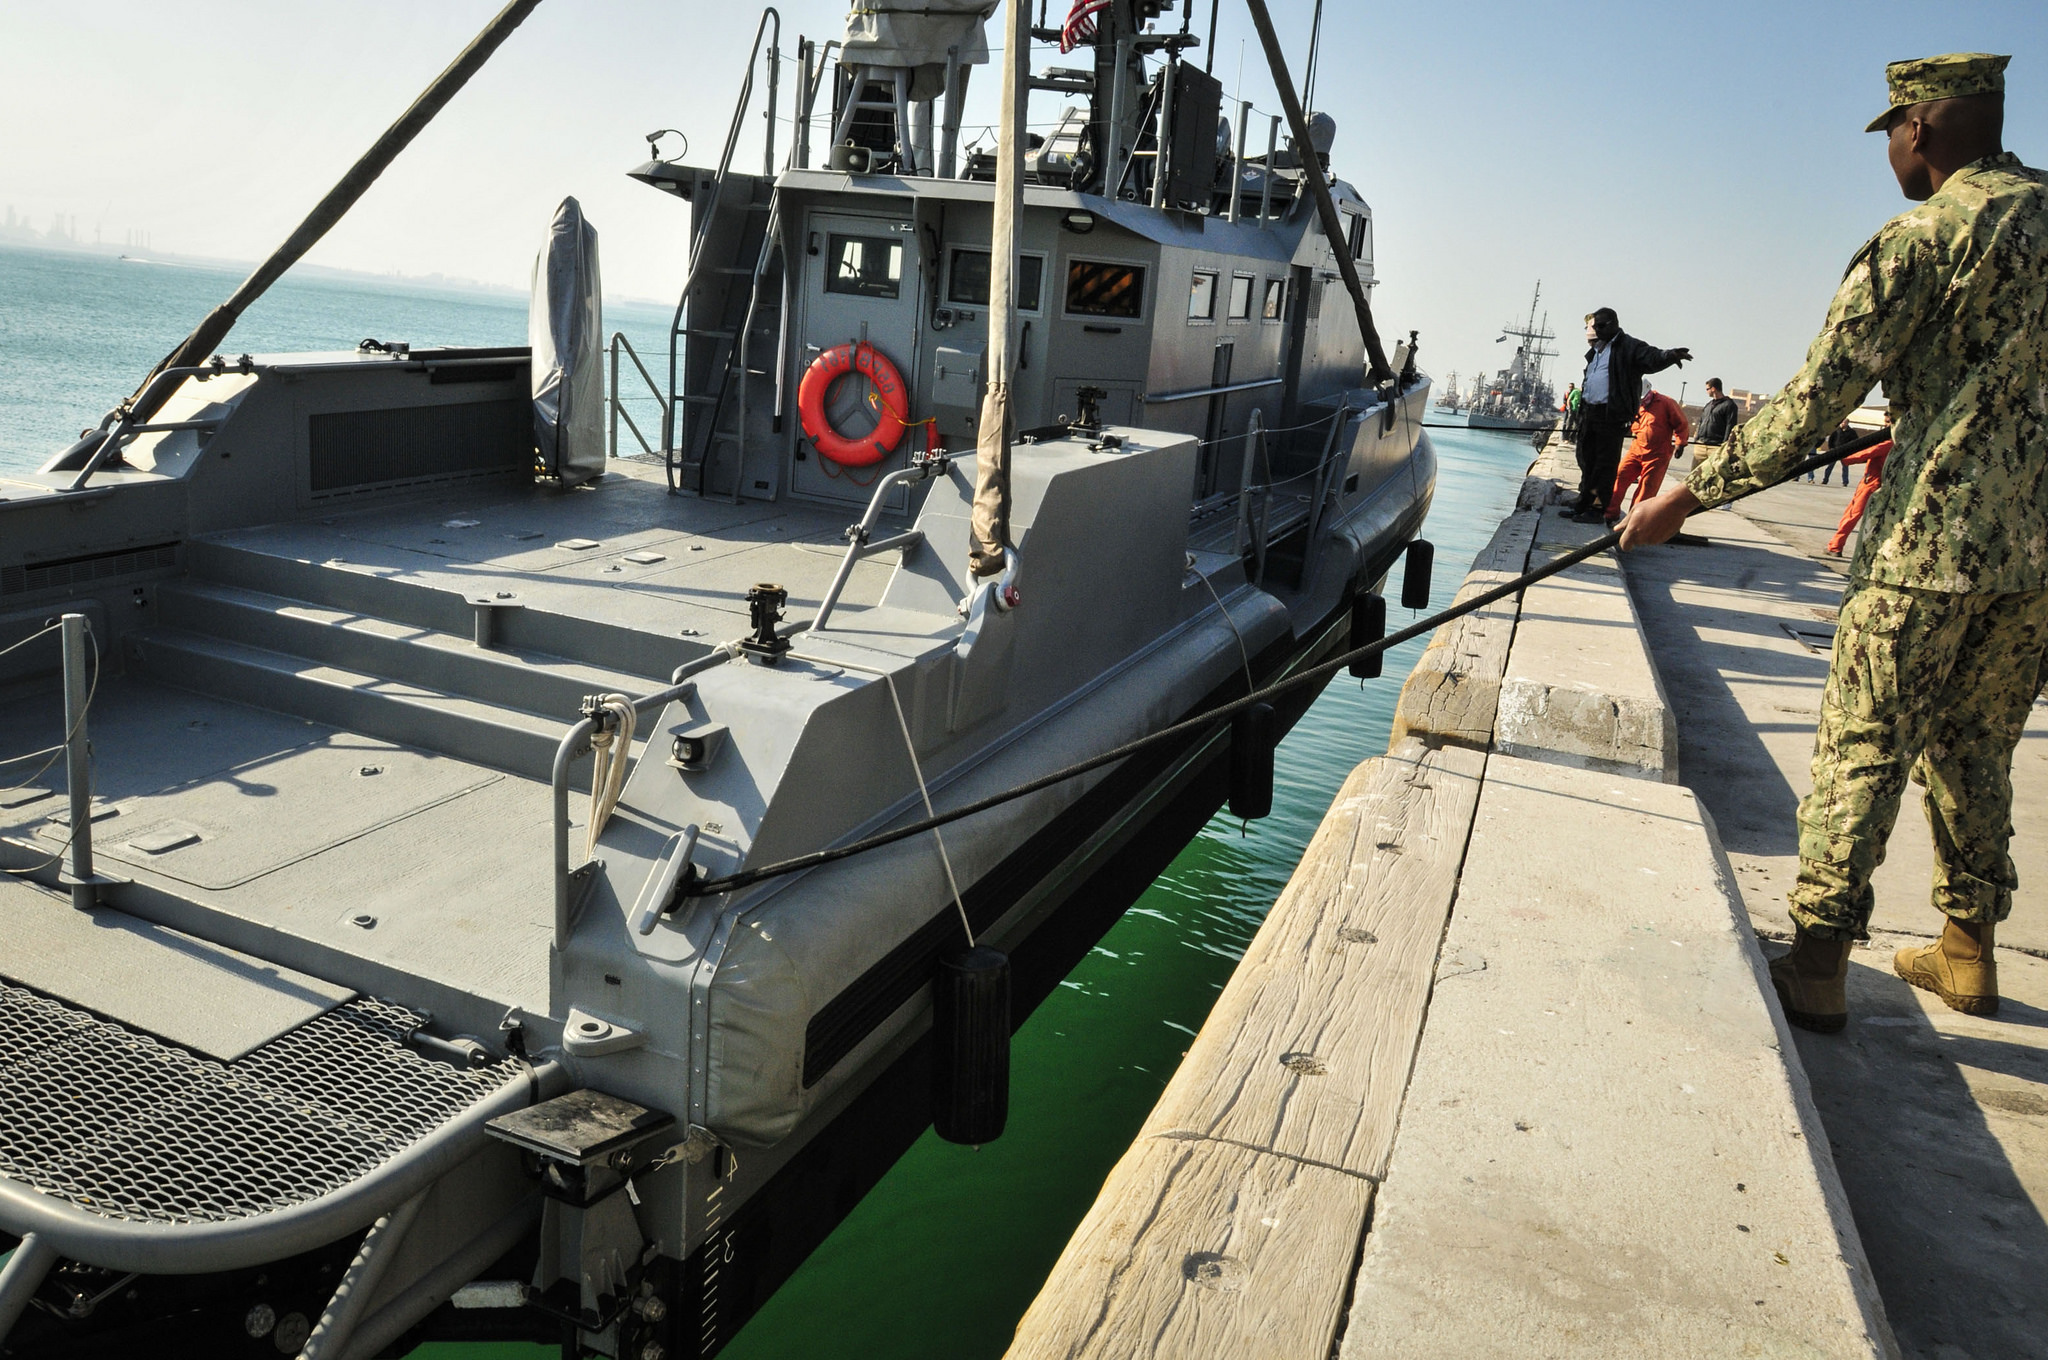 U.S. Navy's Coastal Command Boat lowered into water in its homeport of Bahrain, 2014. (Mass Communication Specialist 1st Class Felicito Rustique)